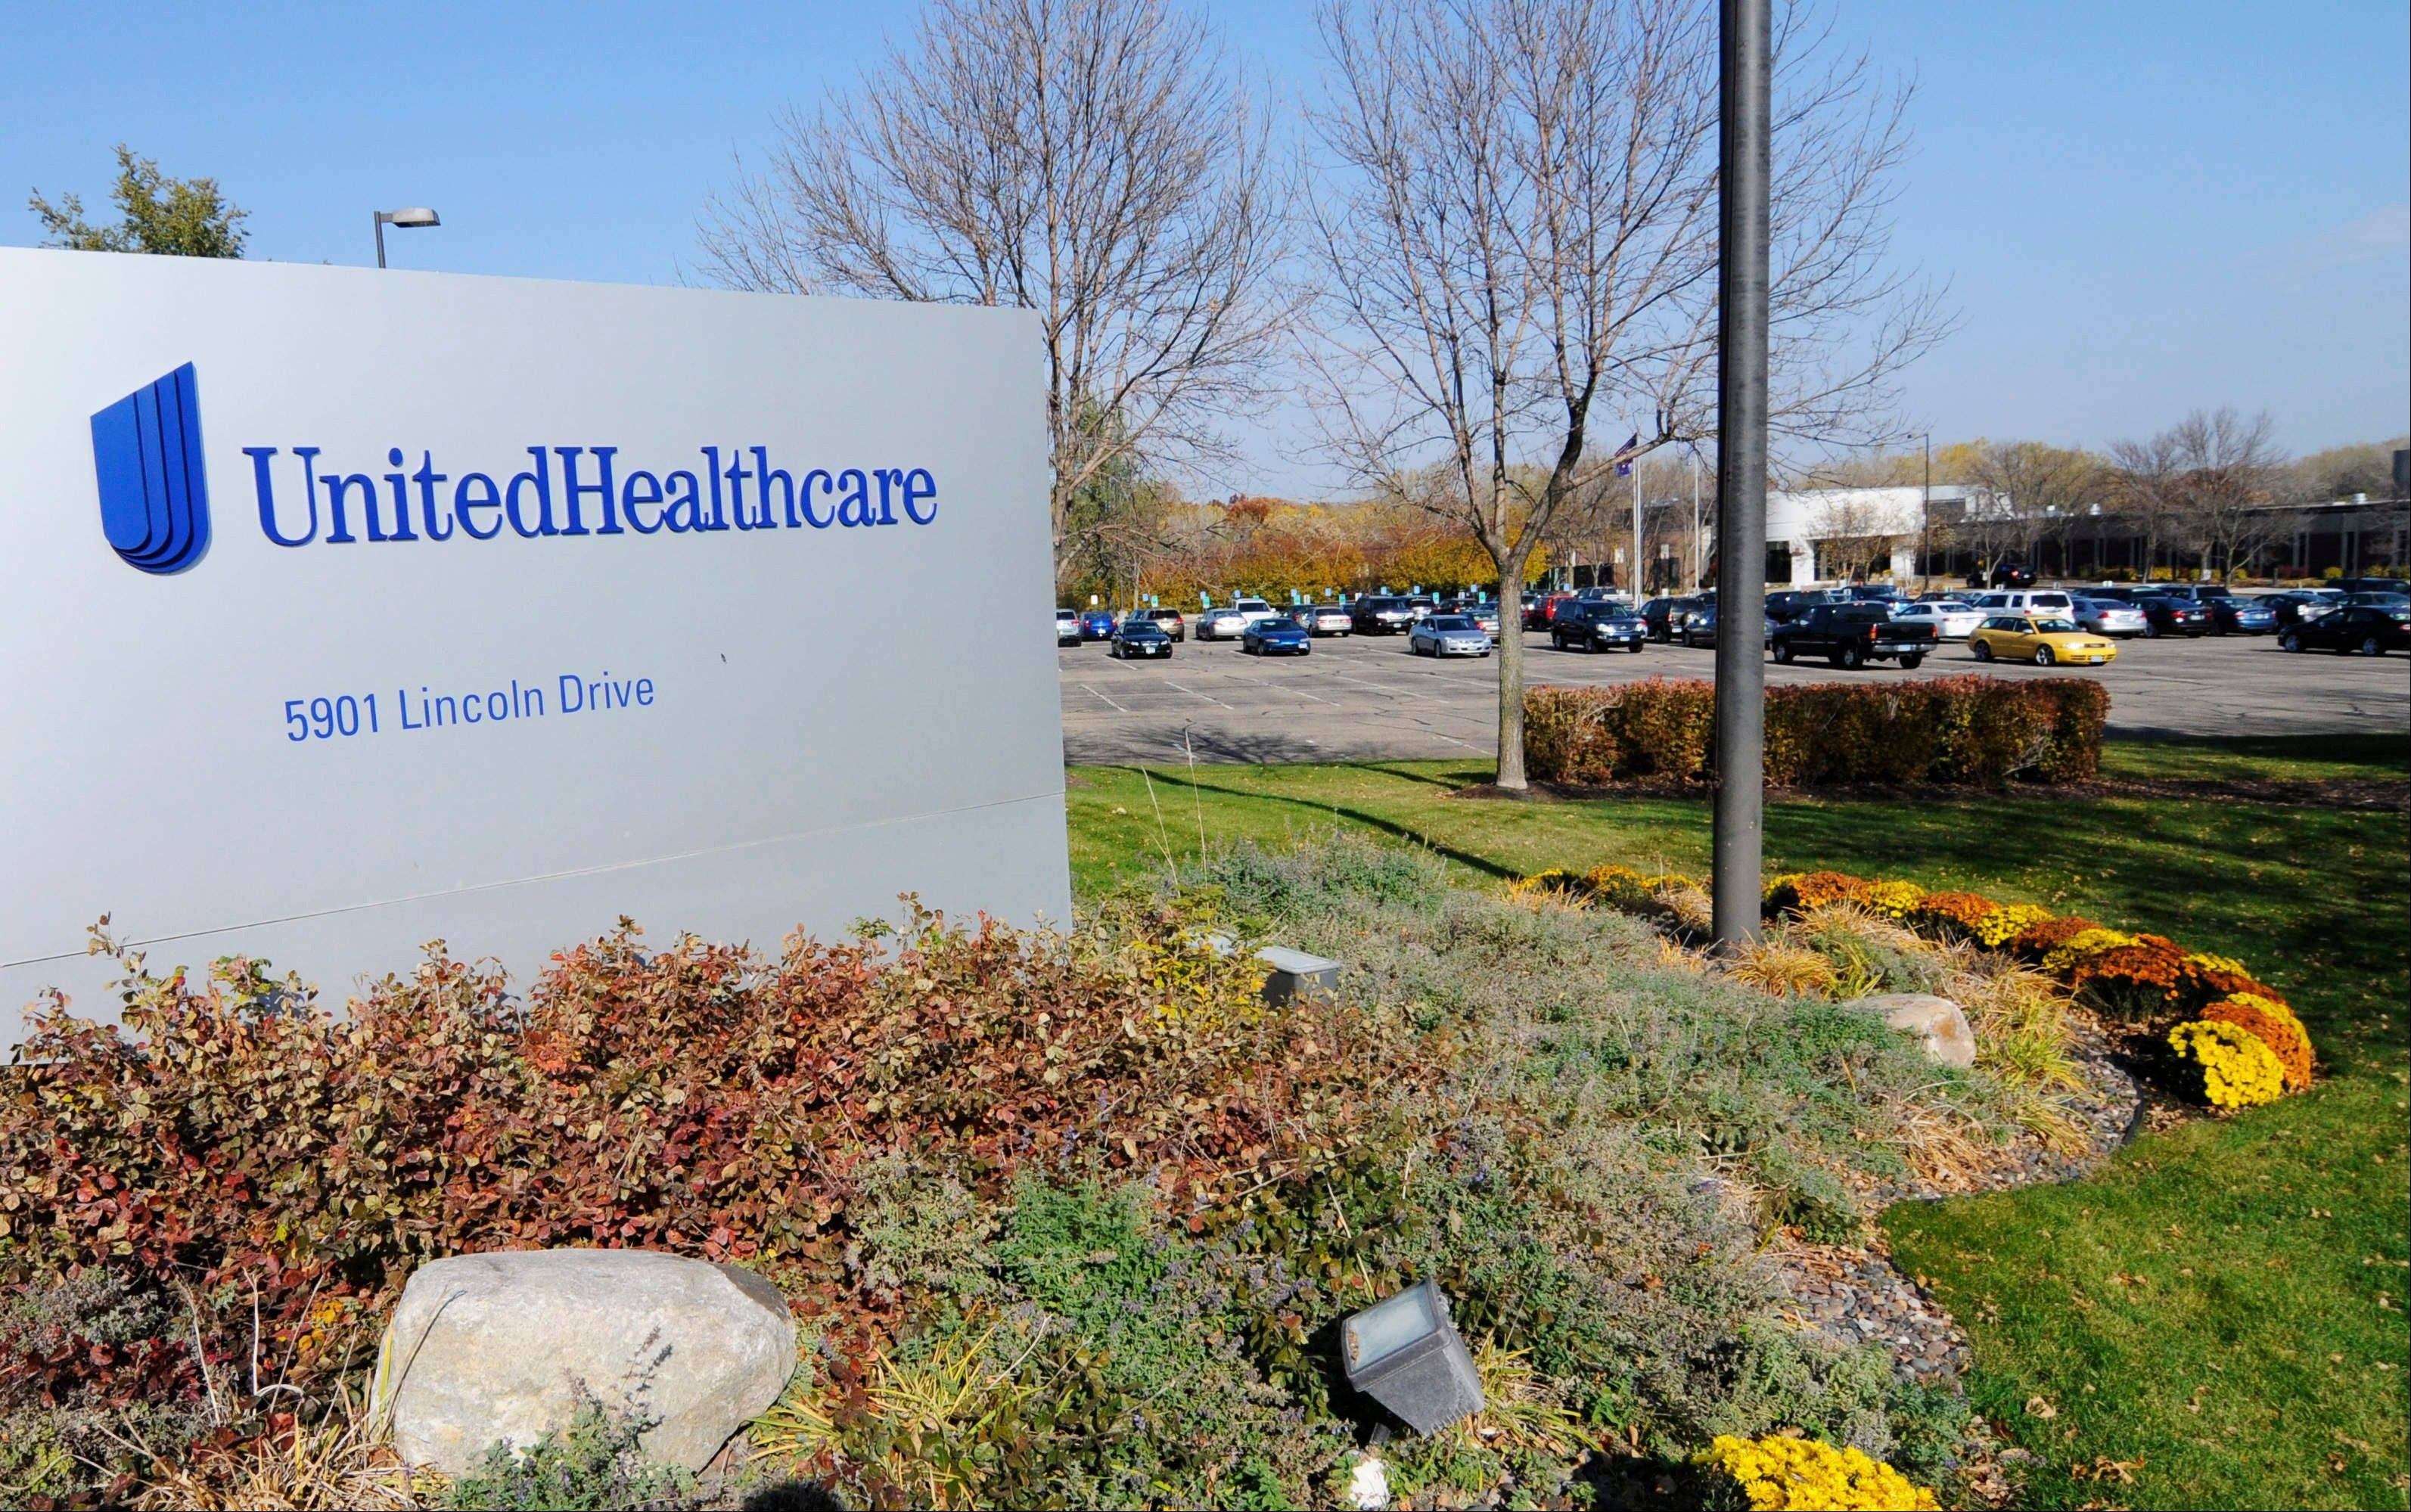 UnitedHealth Group Inc.'s fourth-quarter net income slipped 1 percent, as growing medical costs countered revenue gains for the nation's largest health insurer.